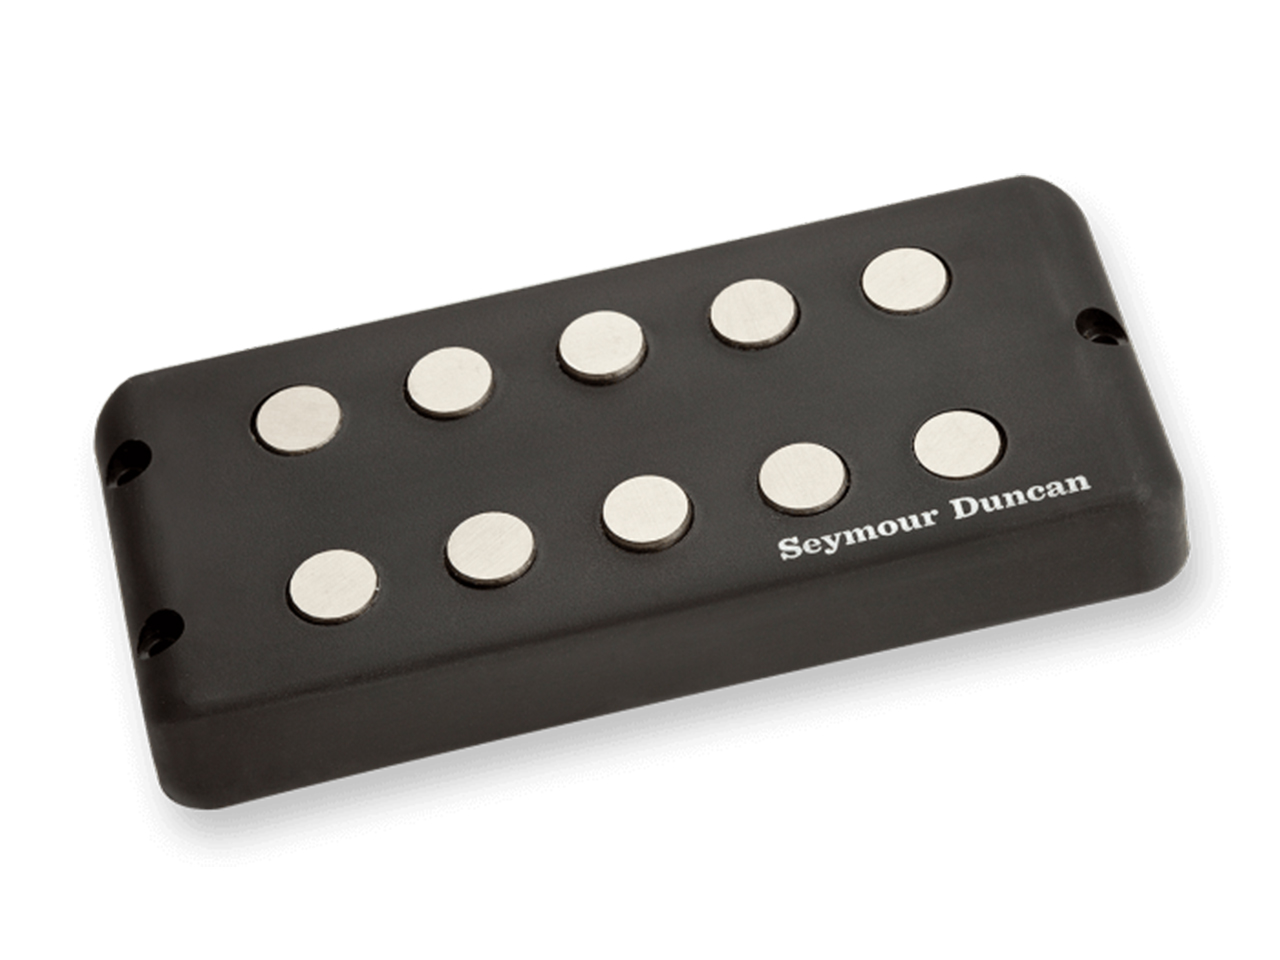 Seymour Duncan(セイモアダンカン) for Musicman® Alnico [SMB-5A/5strings] (ミュージックマンベース用ピックアップ/5弦用)